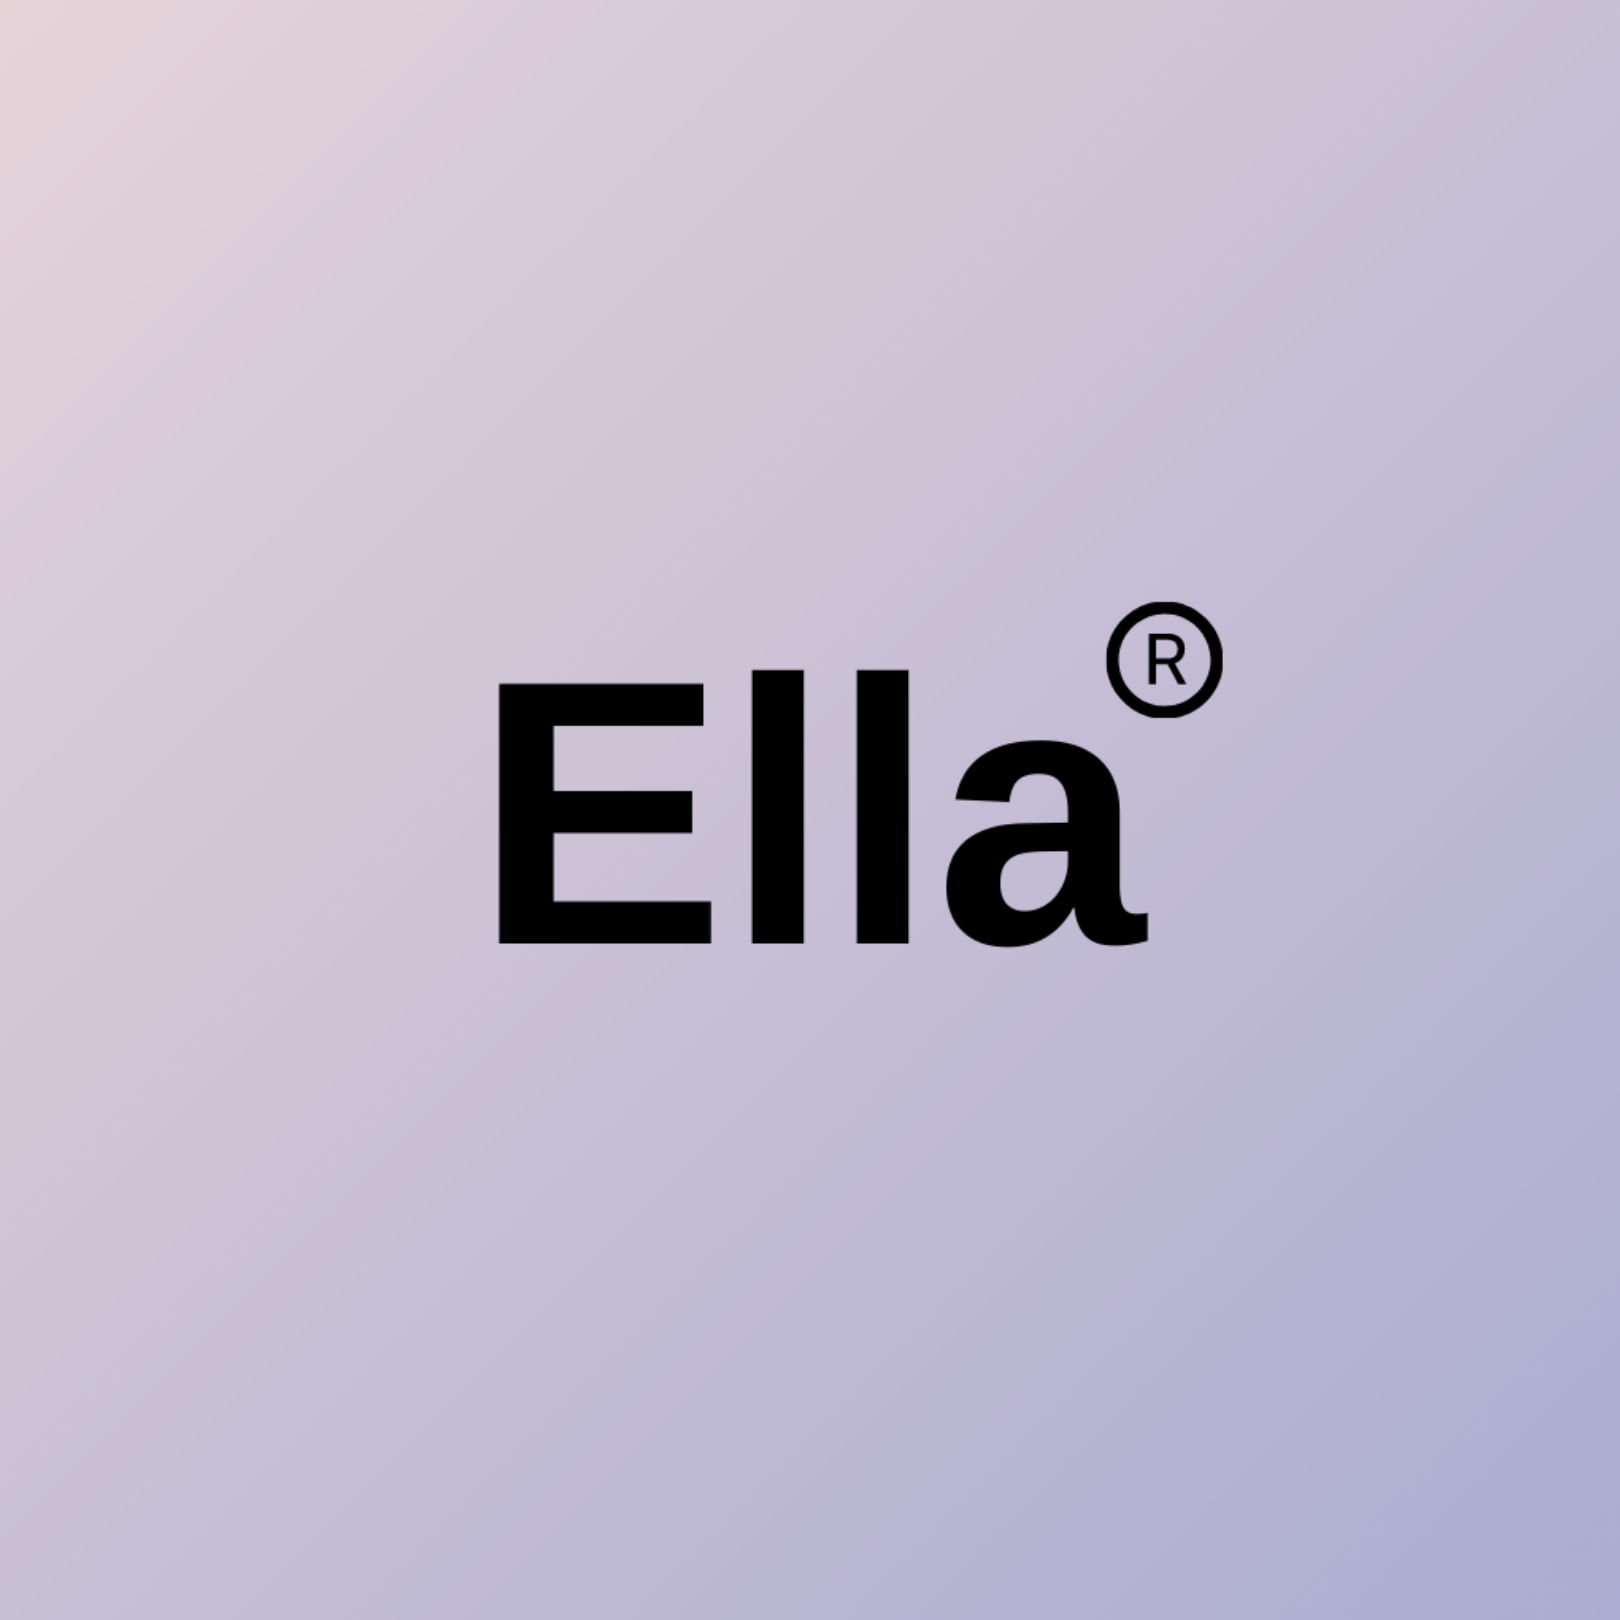 Buy Ella emergency contraception at hellowisp.com